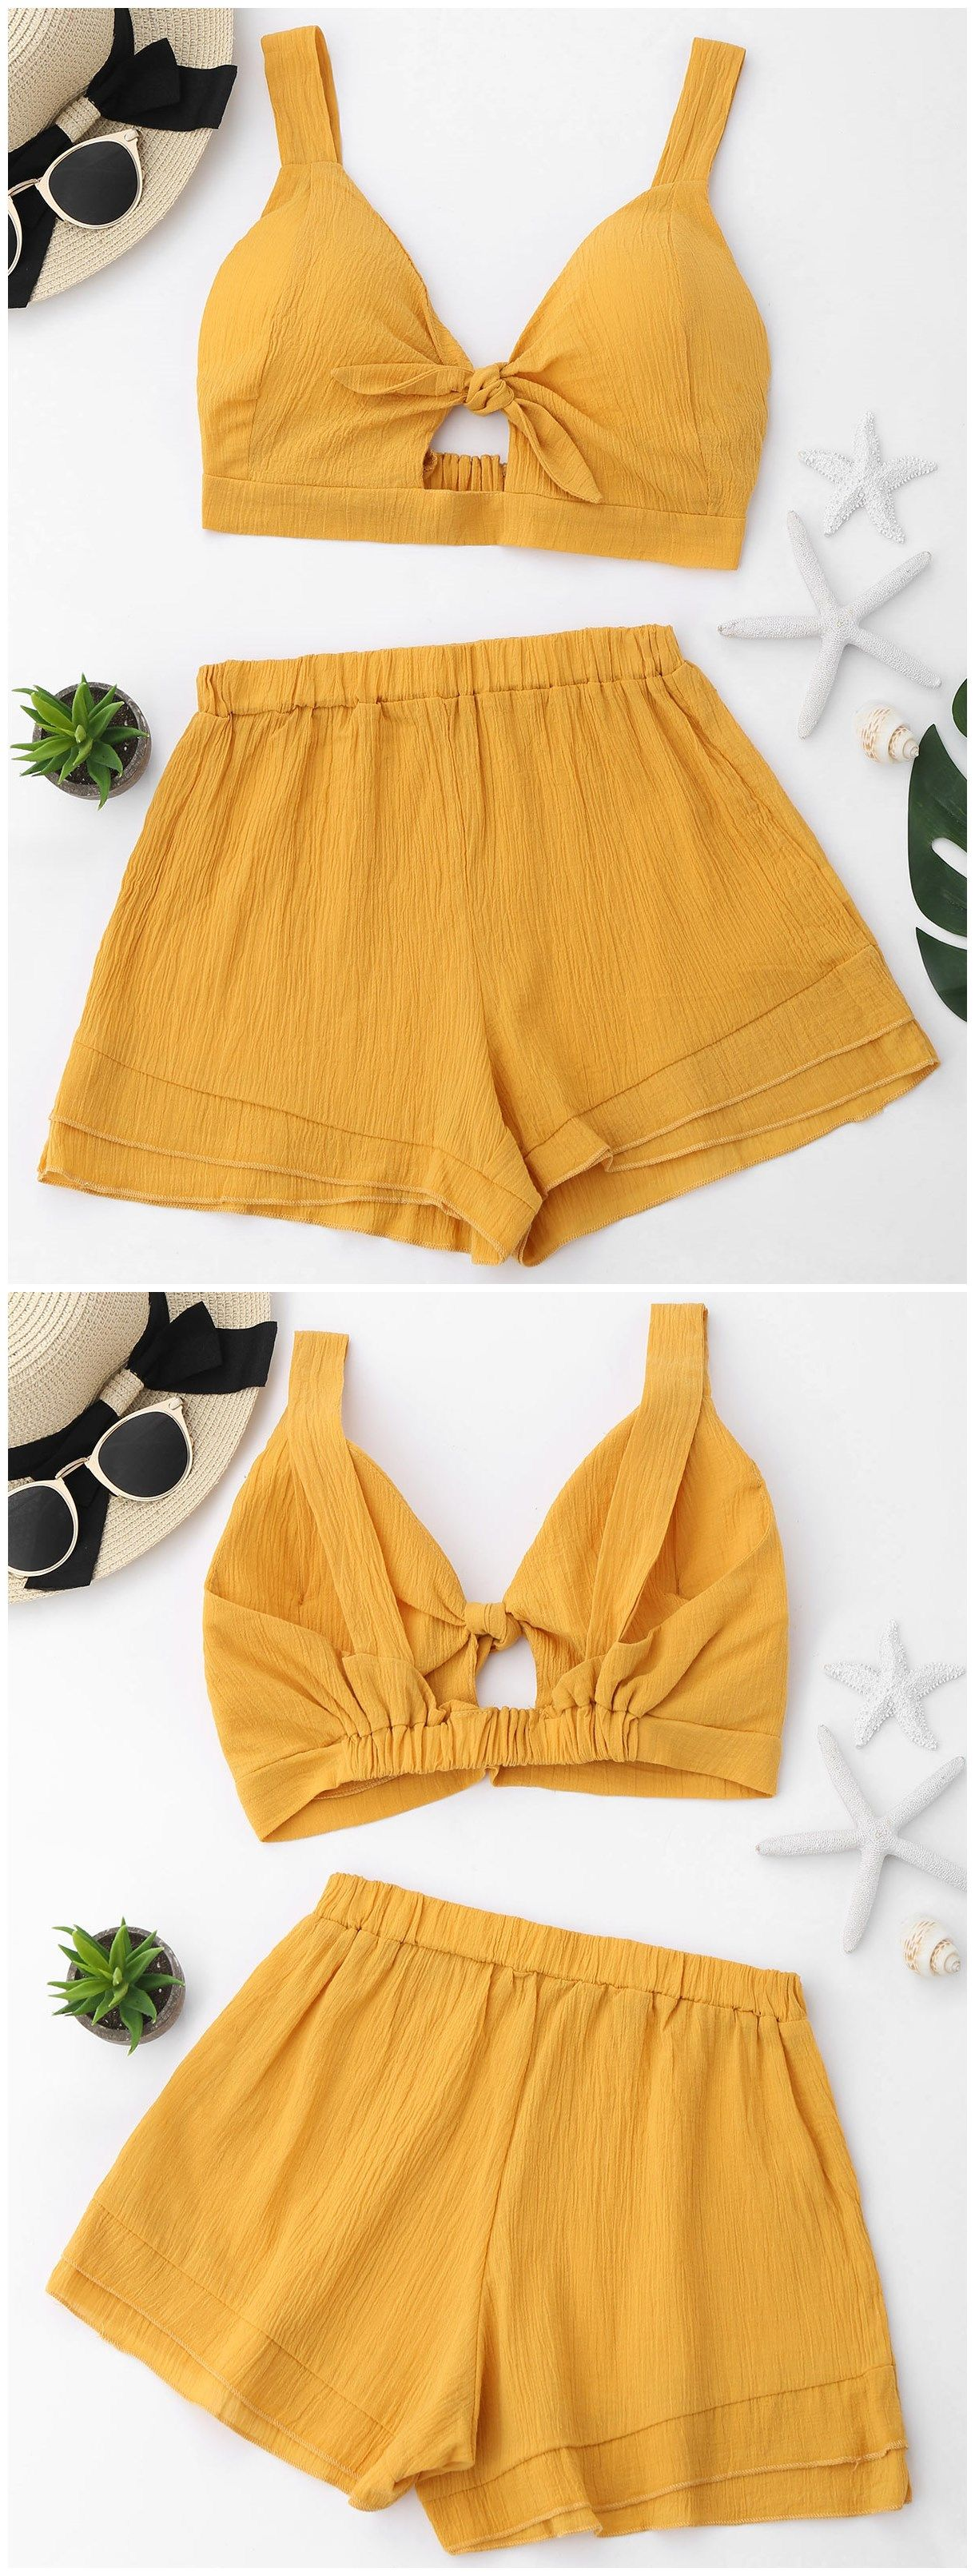 Up to 80% OFF! Cut Out Crop Top And Shorts Set. #Zaful #TwoPieces zaful,zaful outfits,zaful dresses,spring outfits,summer dresses,Valentine's Day,valentines day ideas,valentines outfits,cute,casual,classy,lace,mesh,fashion,style,bottoms,shorts,jumpsuits,rompers,playsuits,playsuit outfit,dressy jumpsuits,playsuits two piece,two piece outfits,two piece dresses,dresses,printed dresses,sundresses,long sleeve dresses,mini dresses,maxi dresses,lace dress @zaful Extra 10% OFF Code:ZF2017